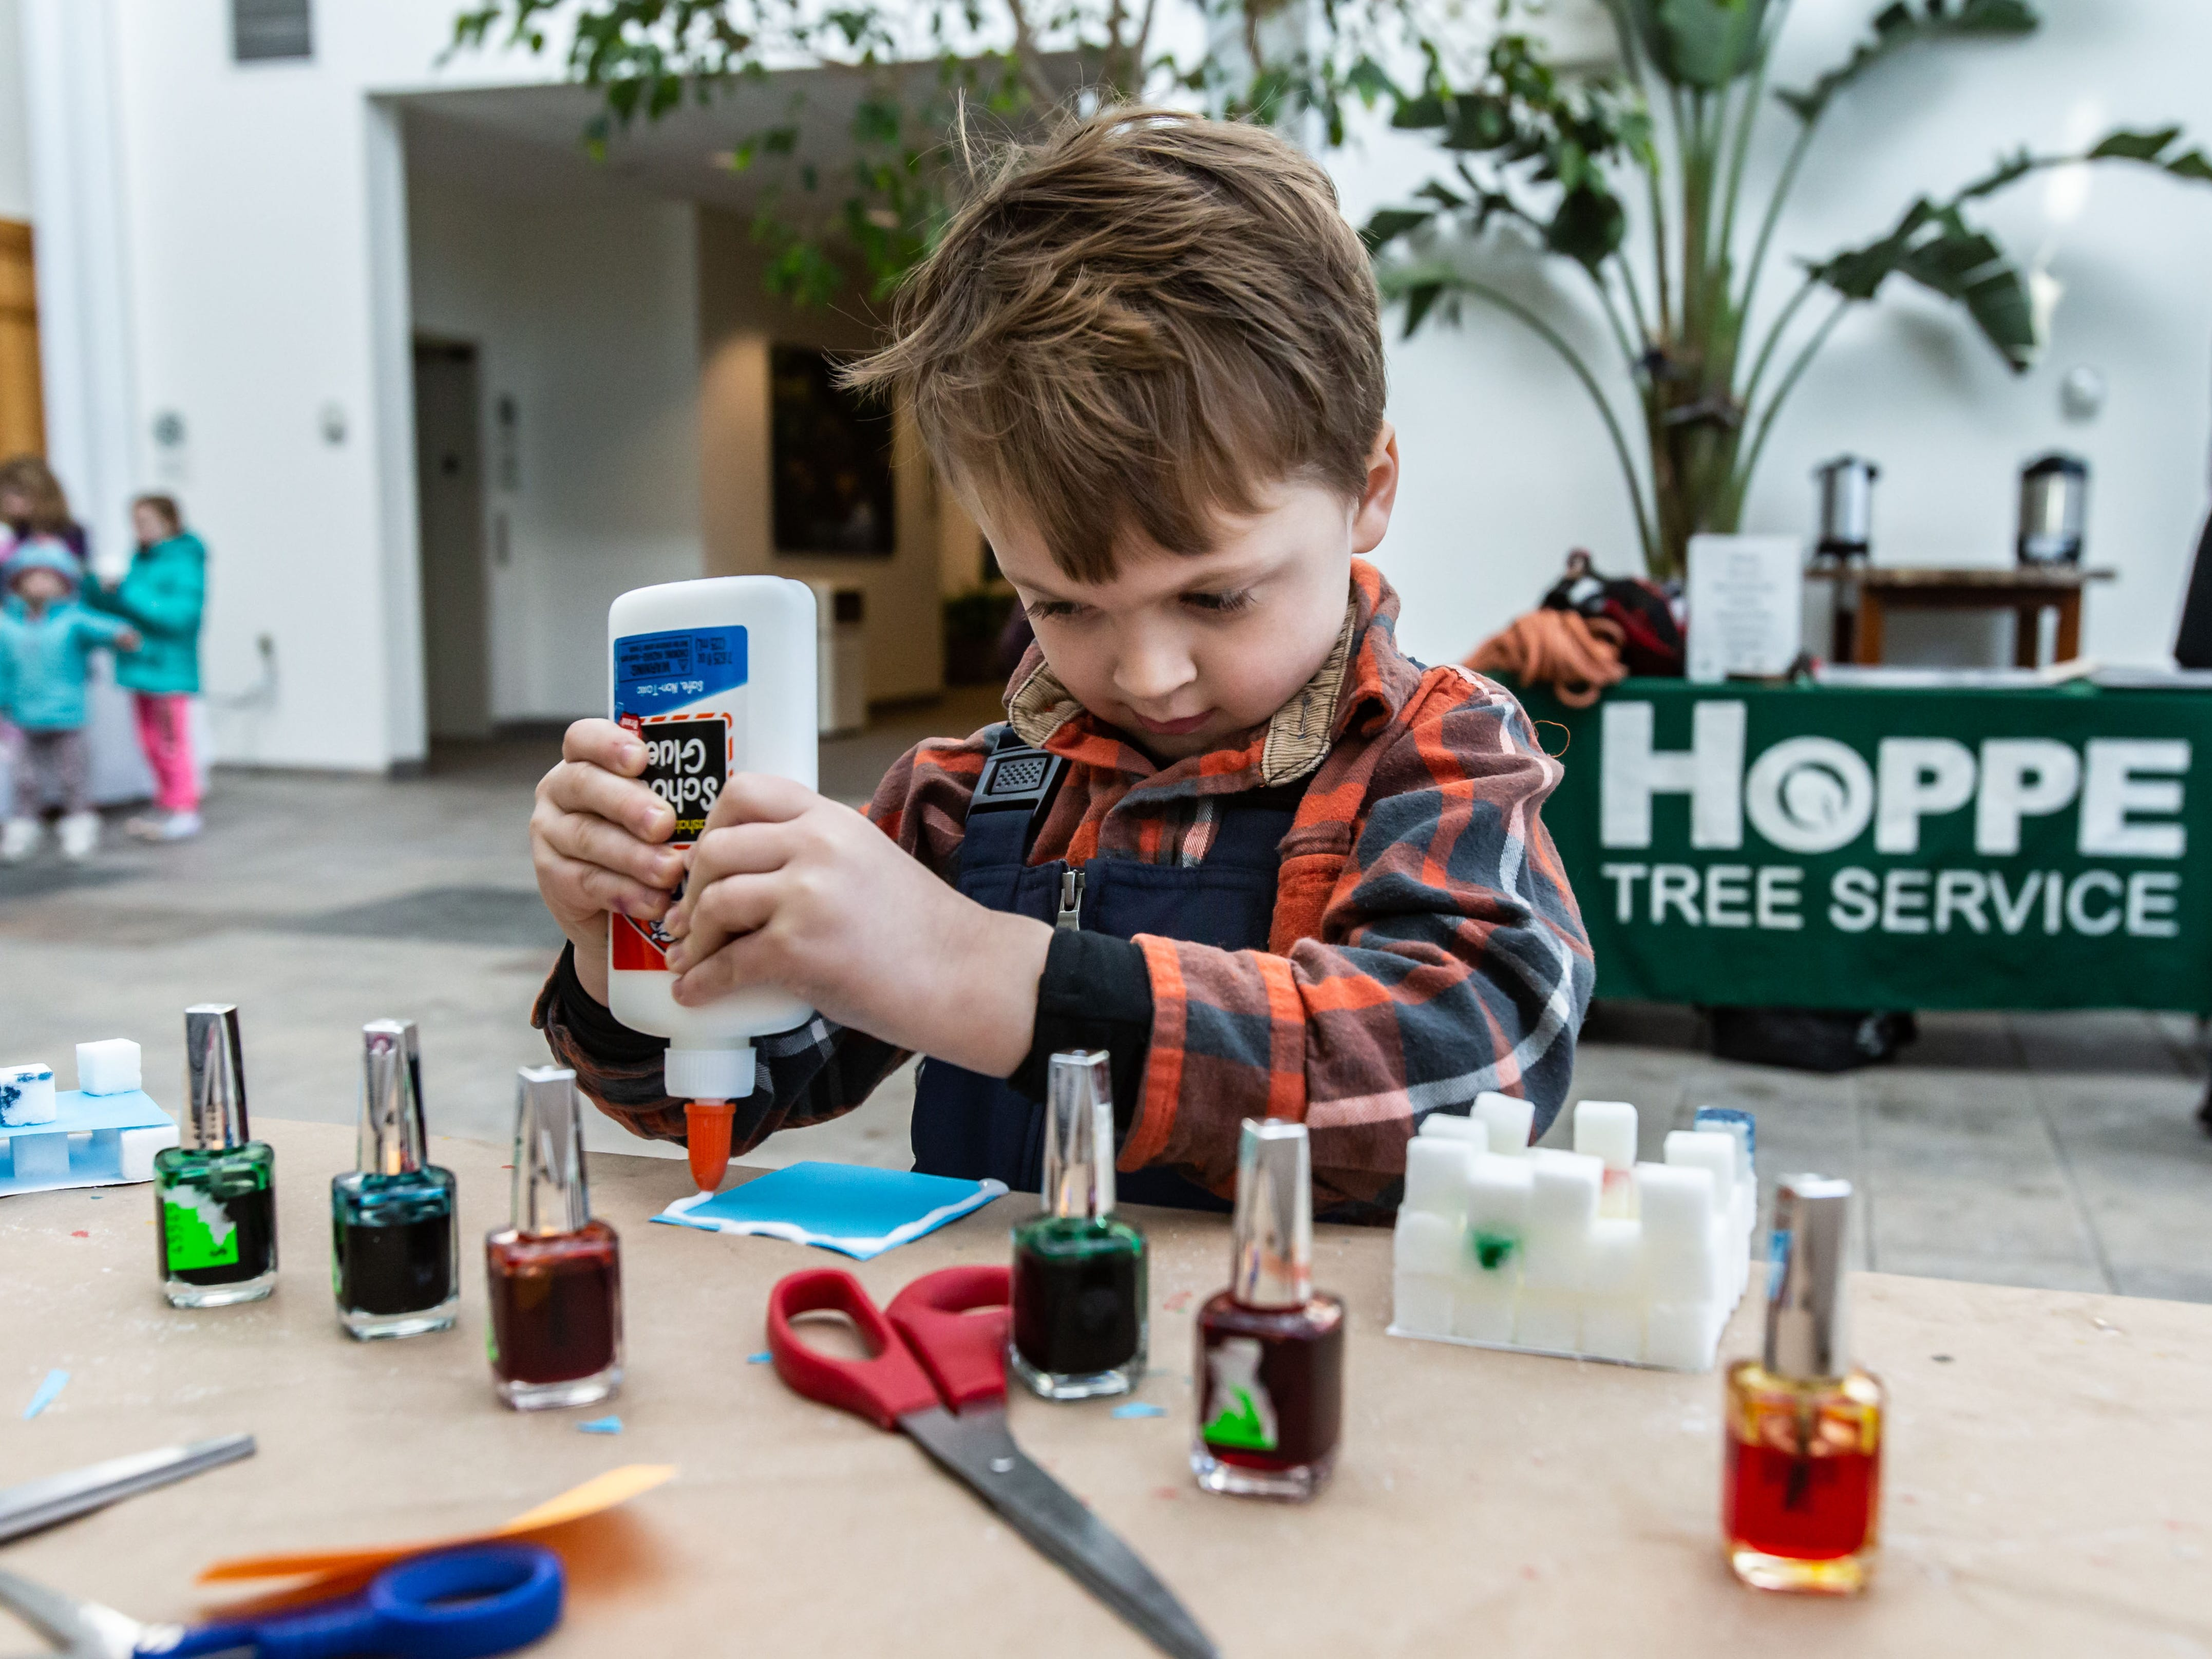 Four-year-old David Gleason of Hales Corners builds a sugar cube ice sculpture during Winterfest at Boerner Botanical Gardens in Hales Corners on Sunday, Jan. 20, 2019. The annual event, hosted by the Friends of Boerner Botanical Gardens, features children's crafts, informational displays, expert-led nature walks and more.